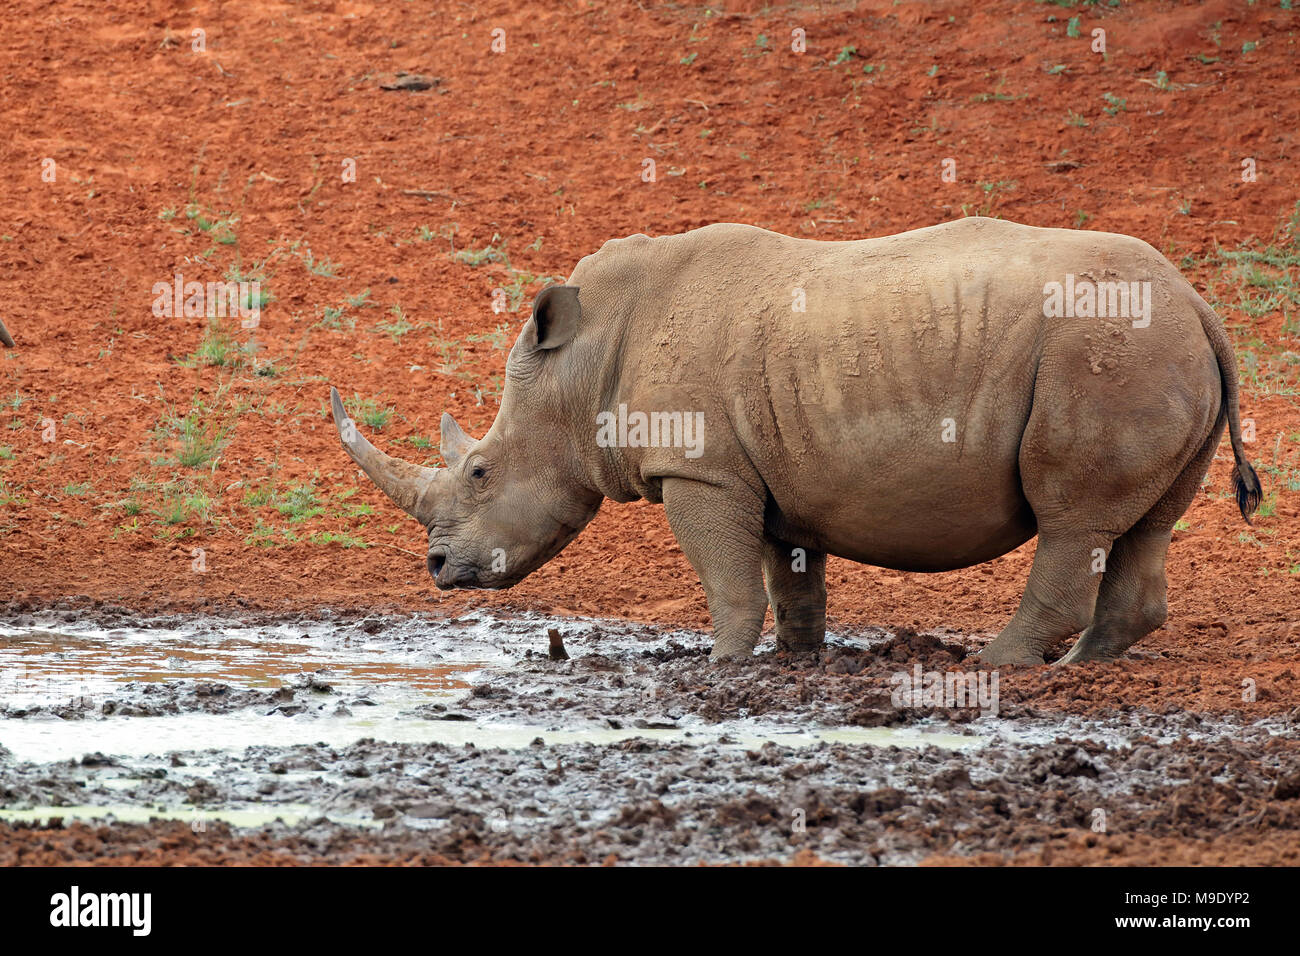 A white rhinoceros (Ceratotherium simum) at a waterhole, South Africa Stock Photo